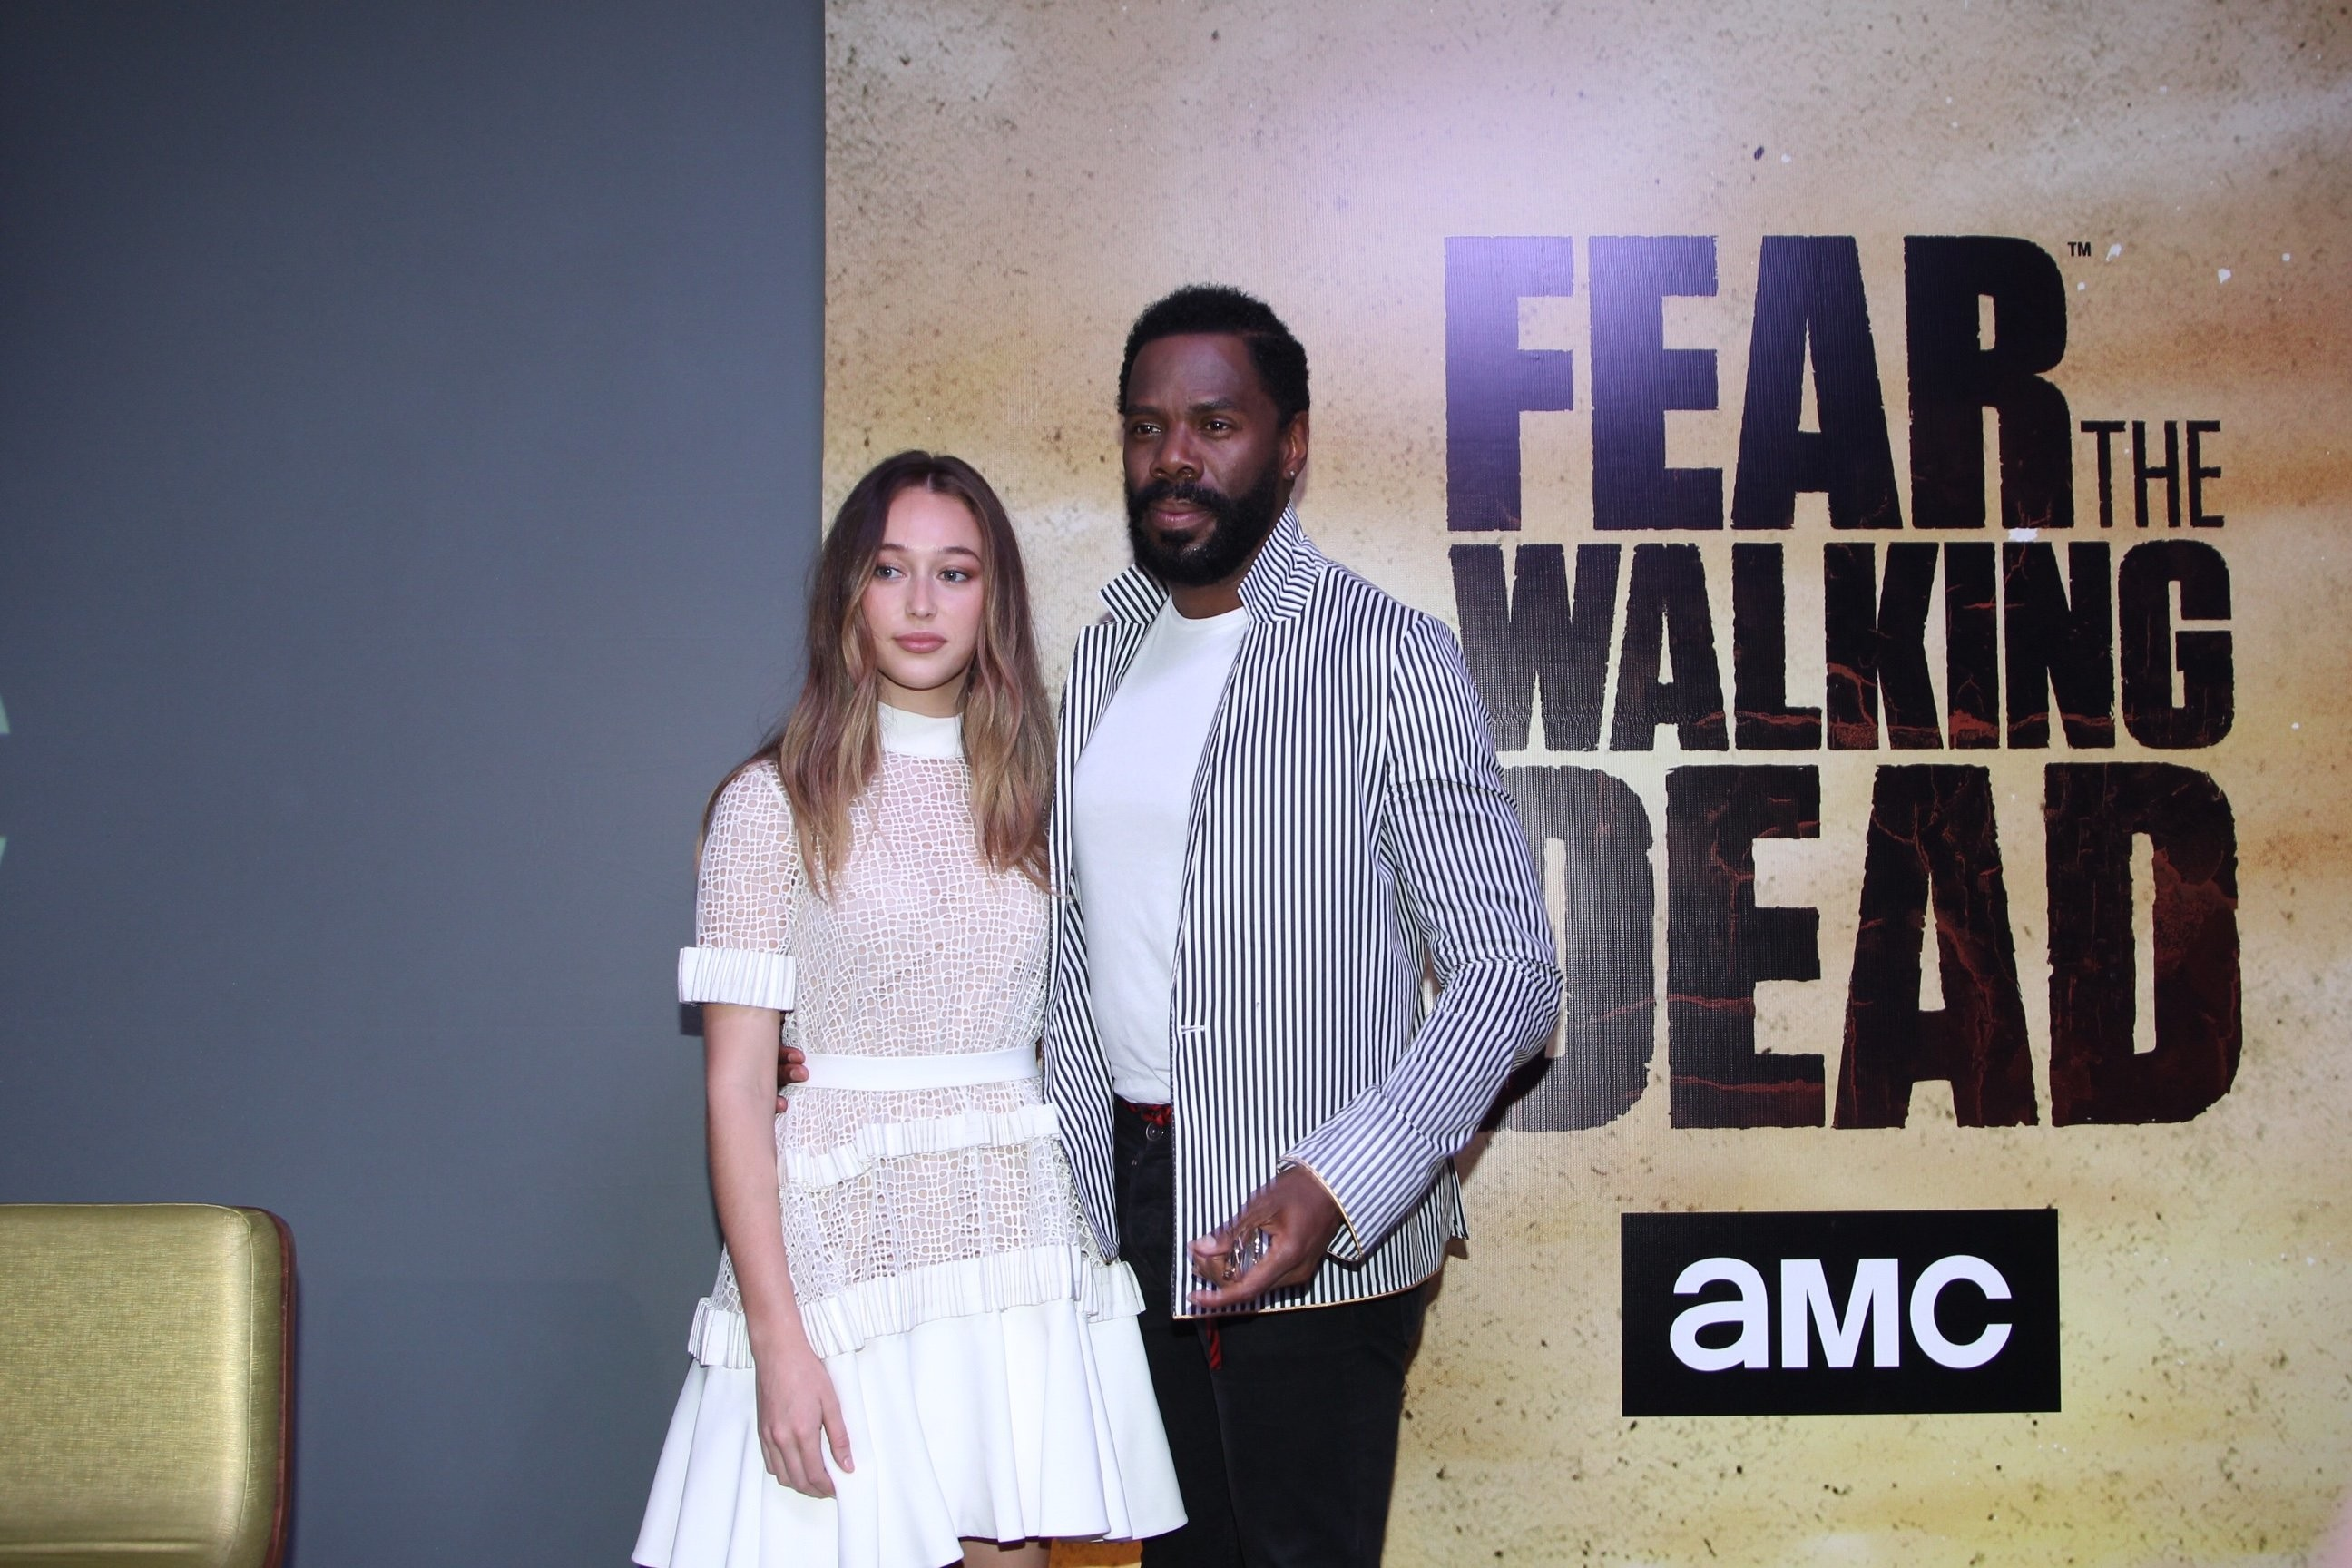 Fear The Walking Dead Press Conference